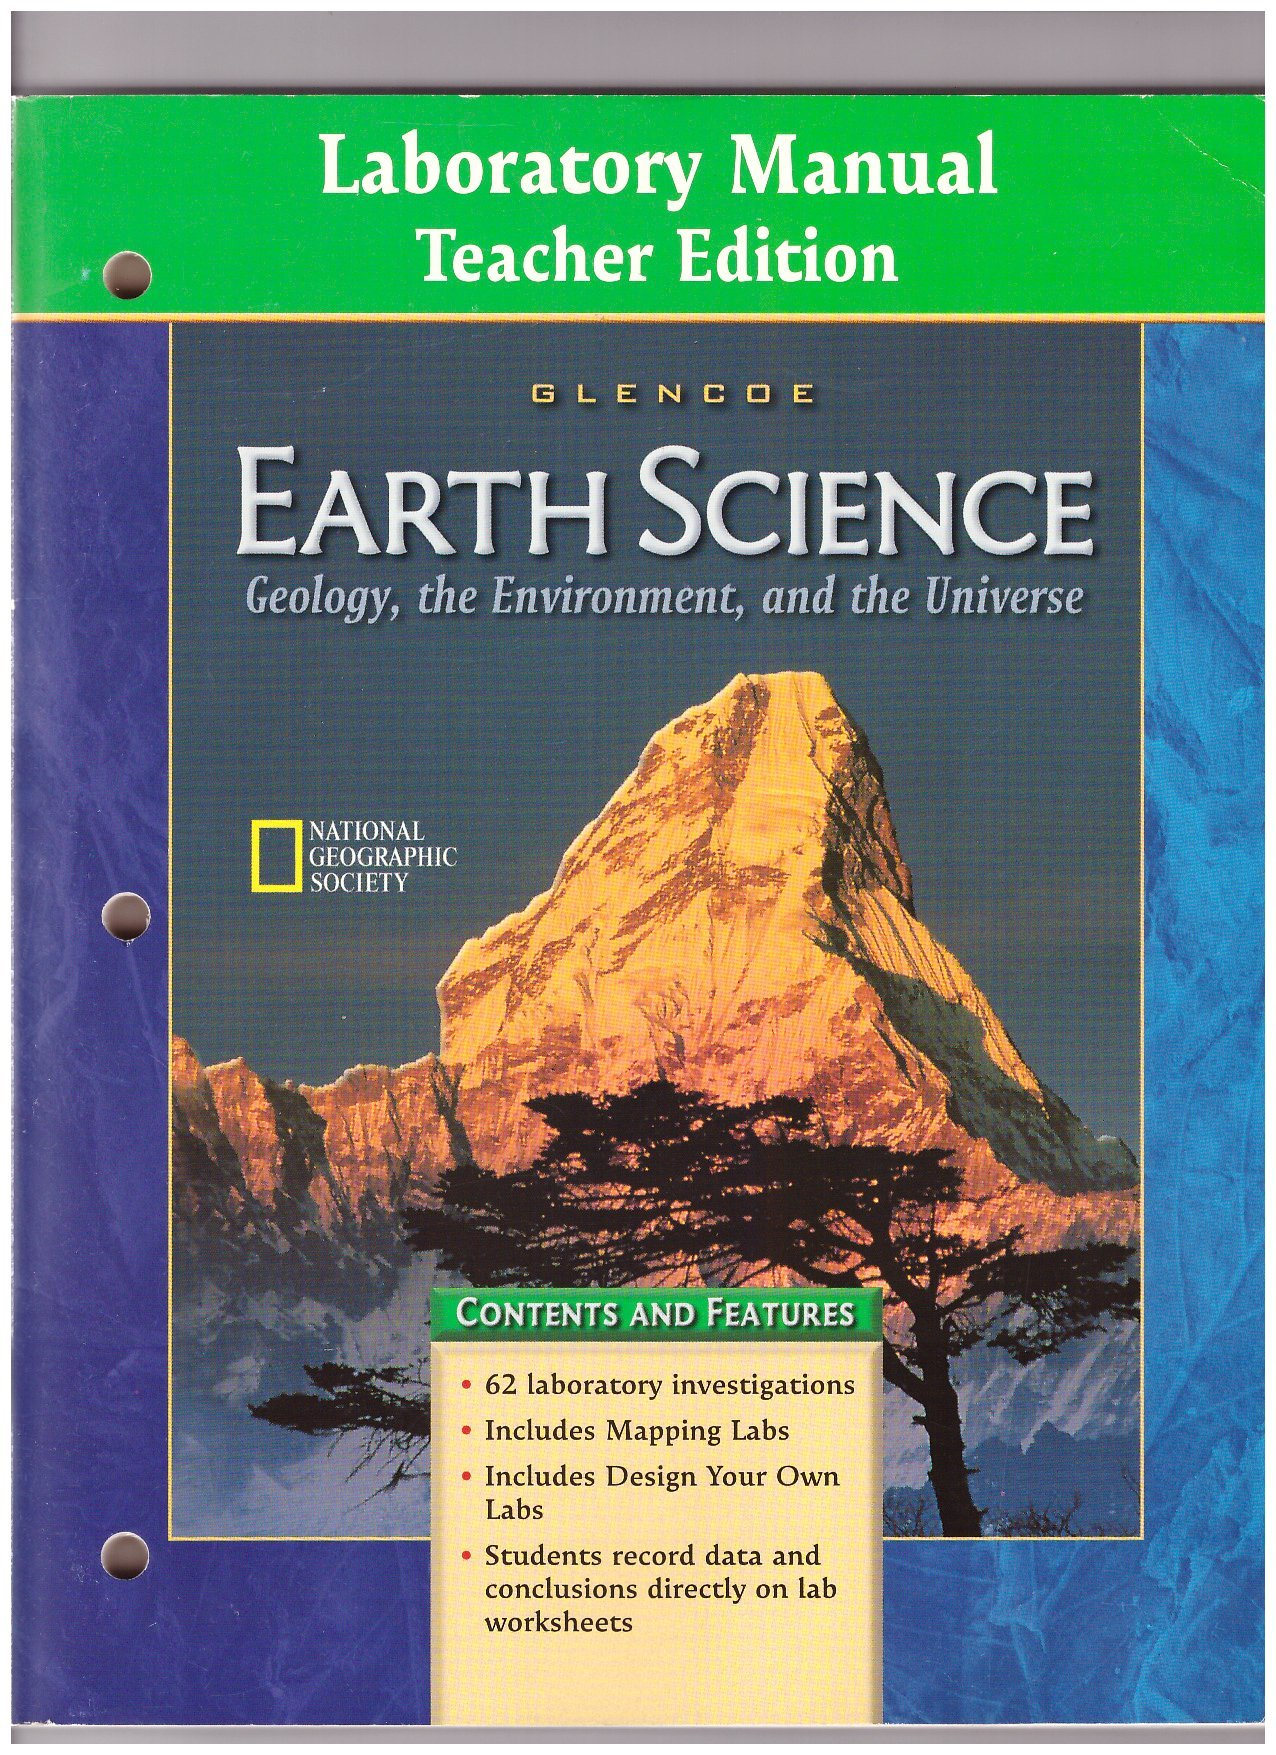 Laboratory Manual to accompany Glencoe Earth Science: Geology, the  Environment, and the Universe, Teacher's Edition: McGraw-Hill:  9780078245688: Amazon.com: ...